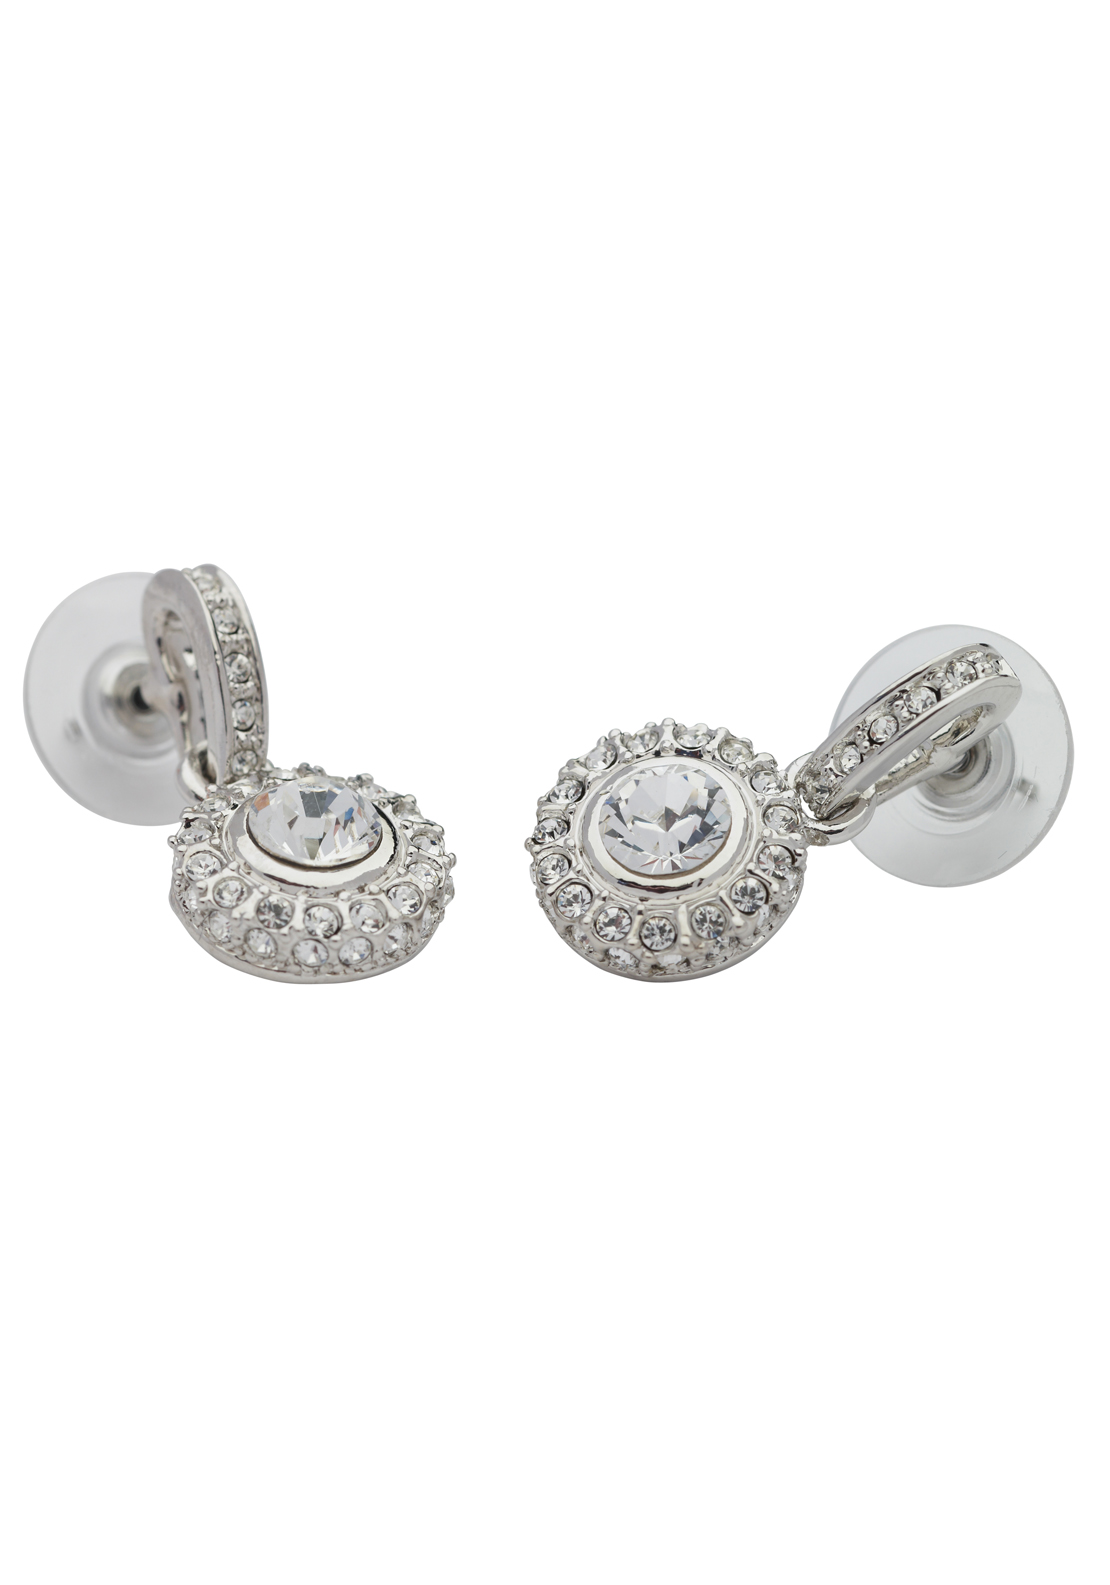 Killarney Crystal Opulence Drop Stud Earrings